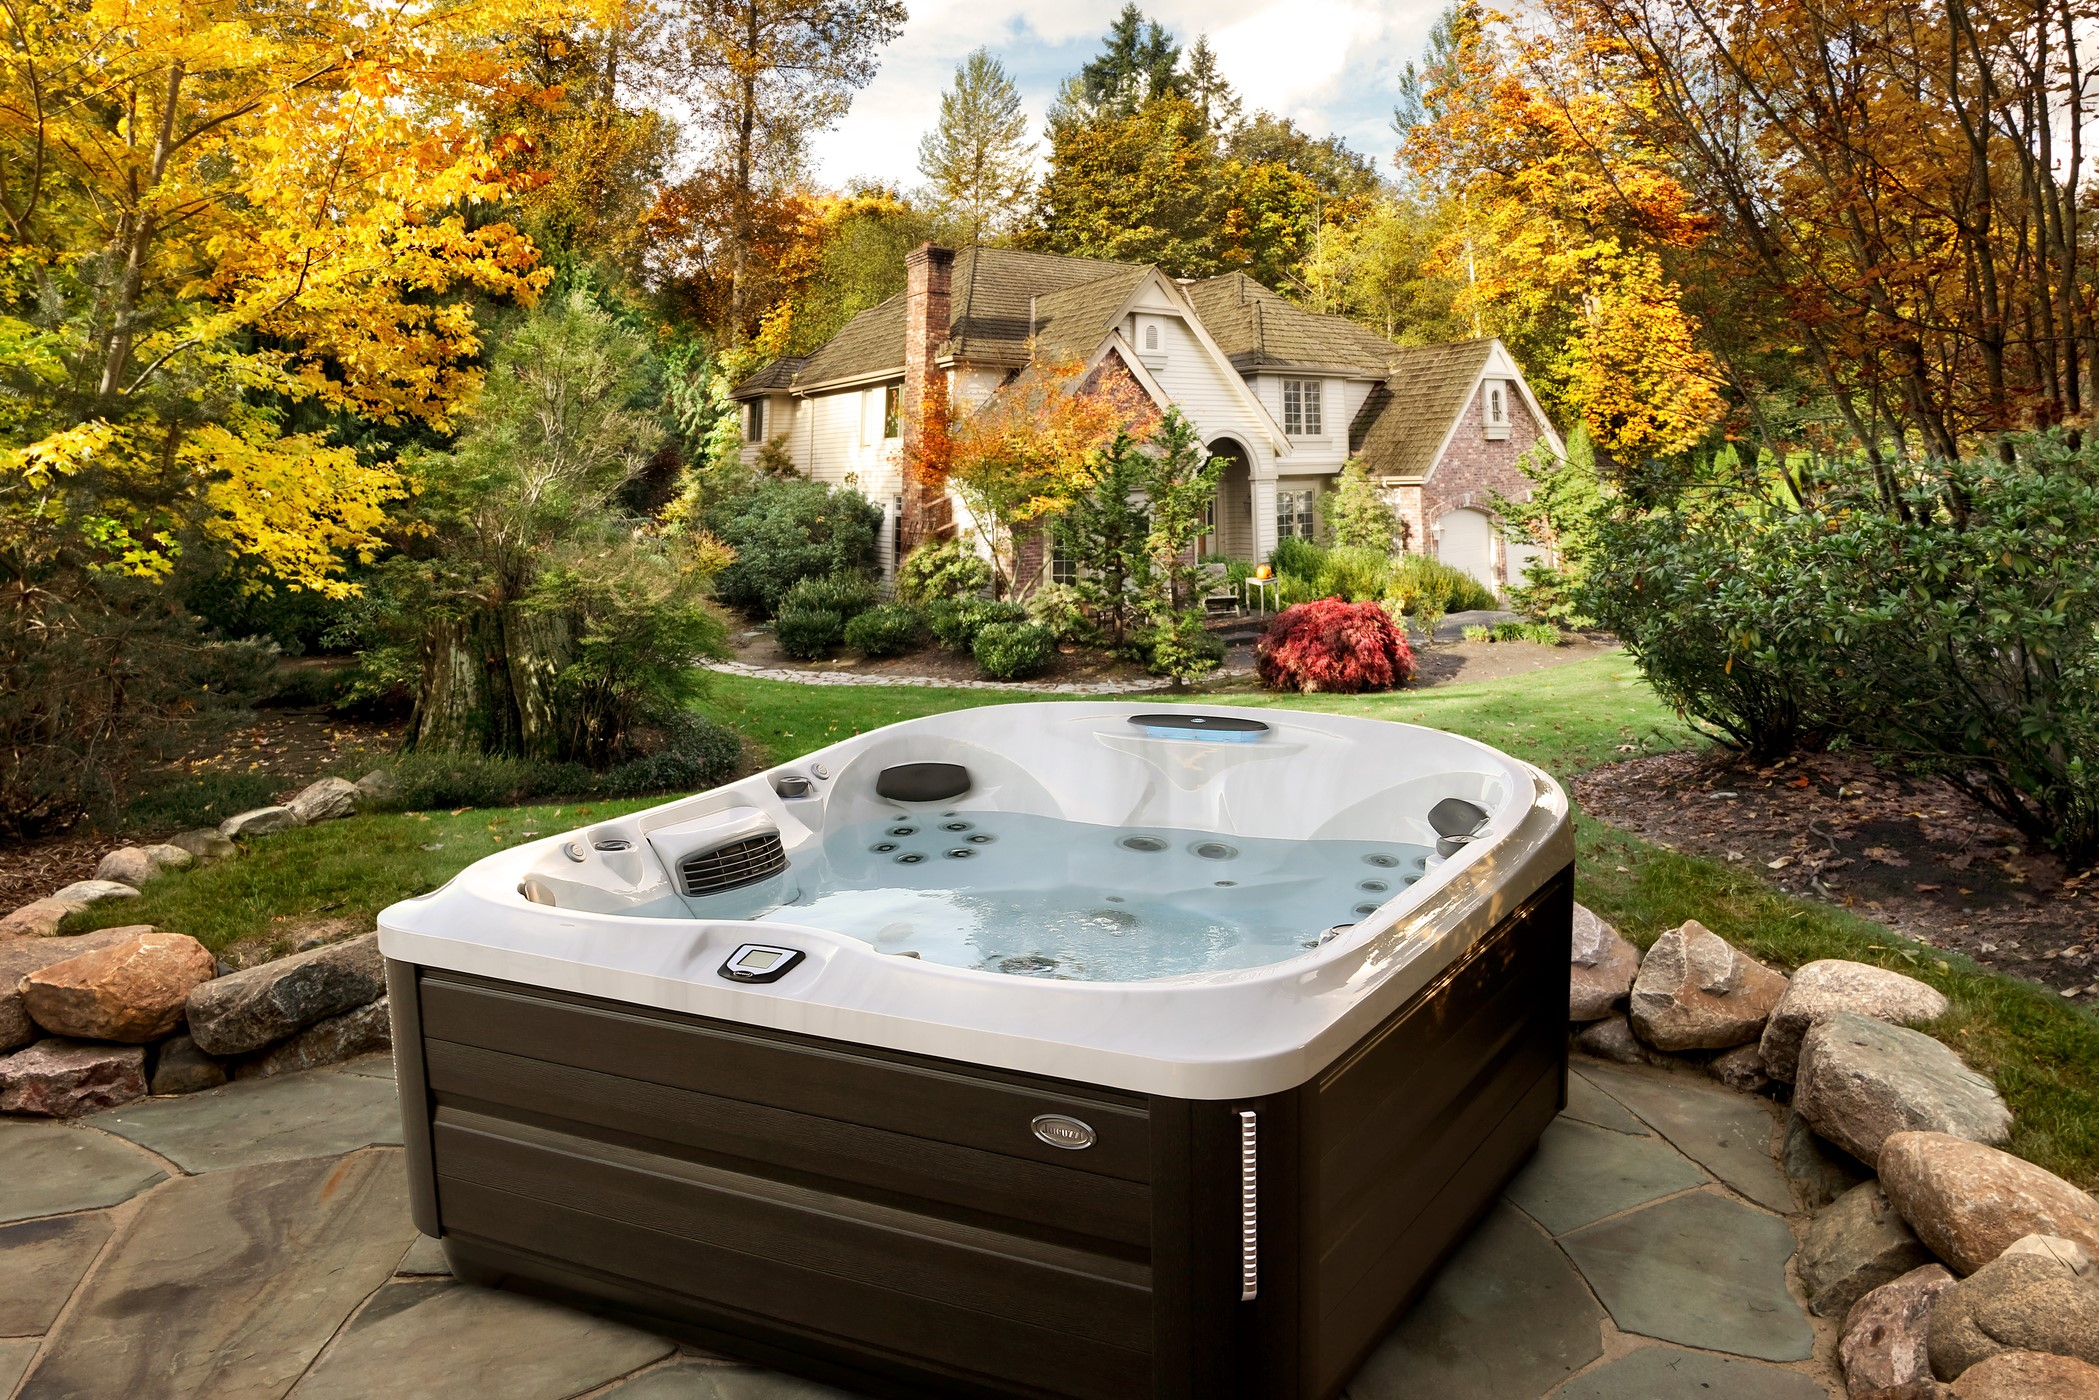 Jacuzzi Ontario fall spa hot tub